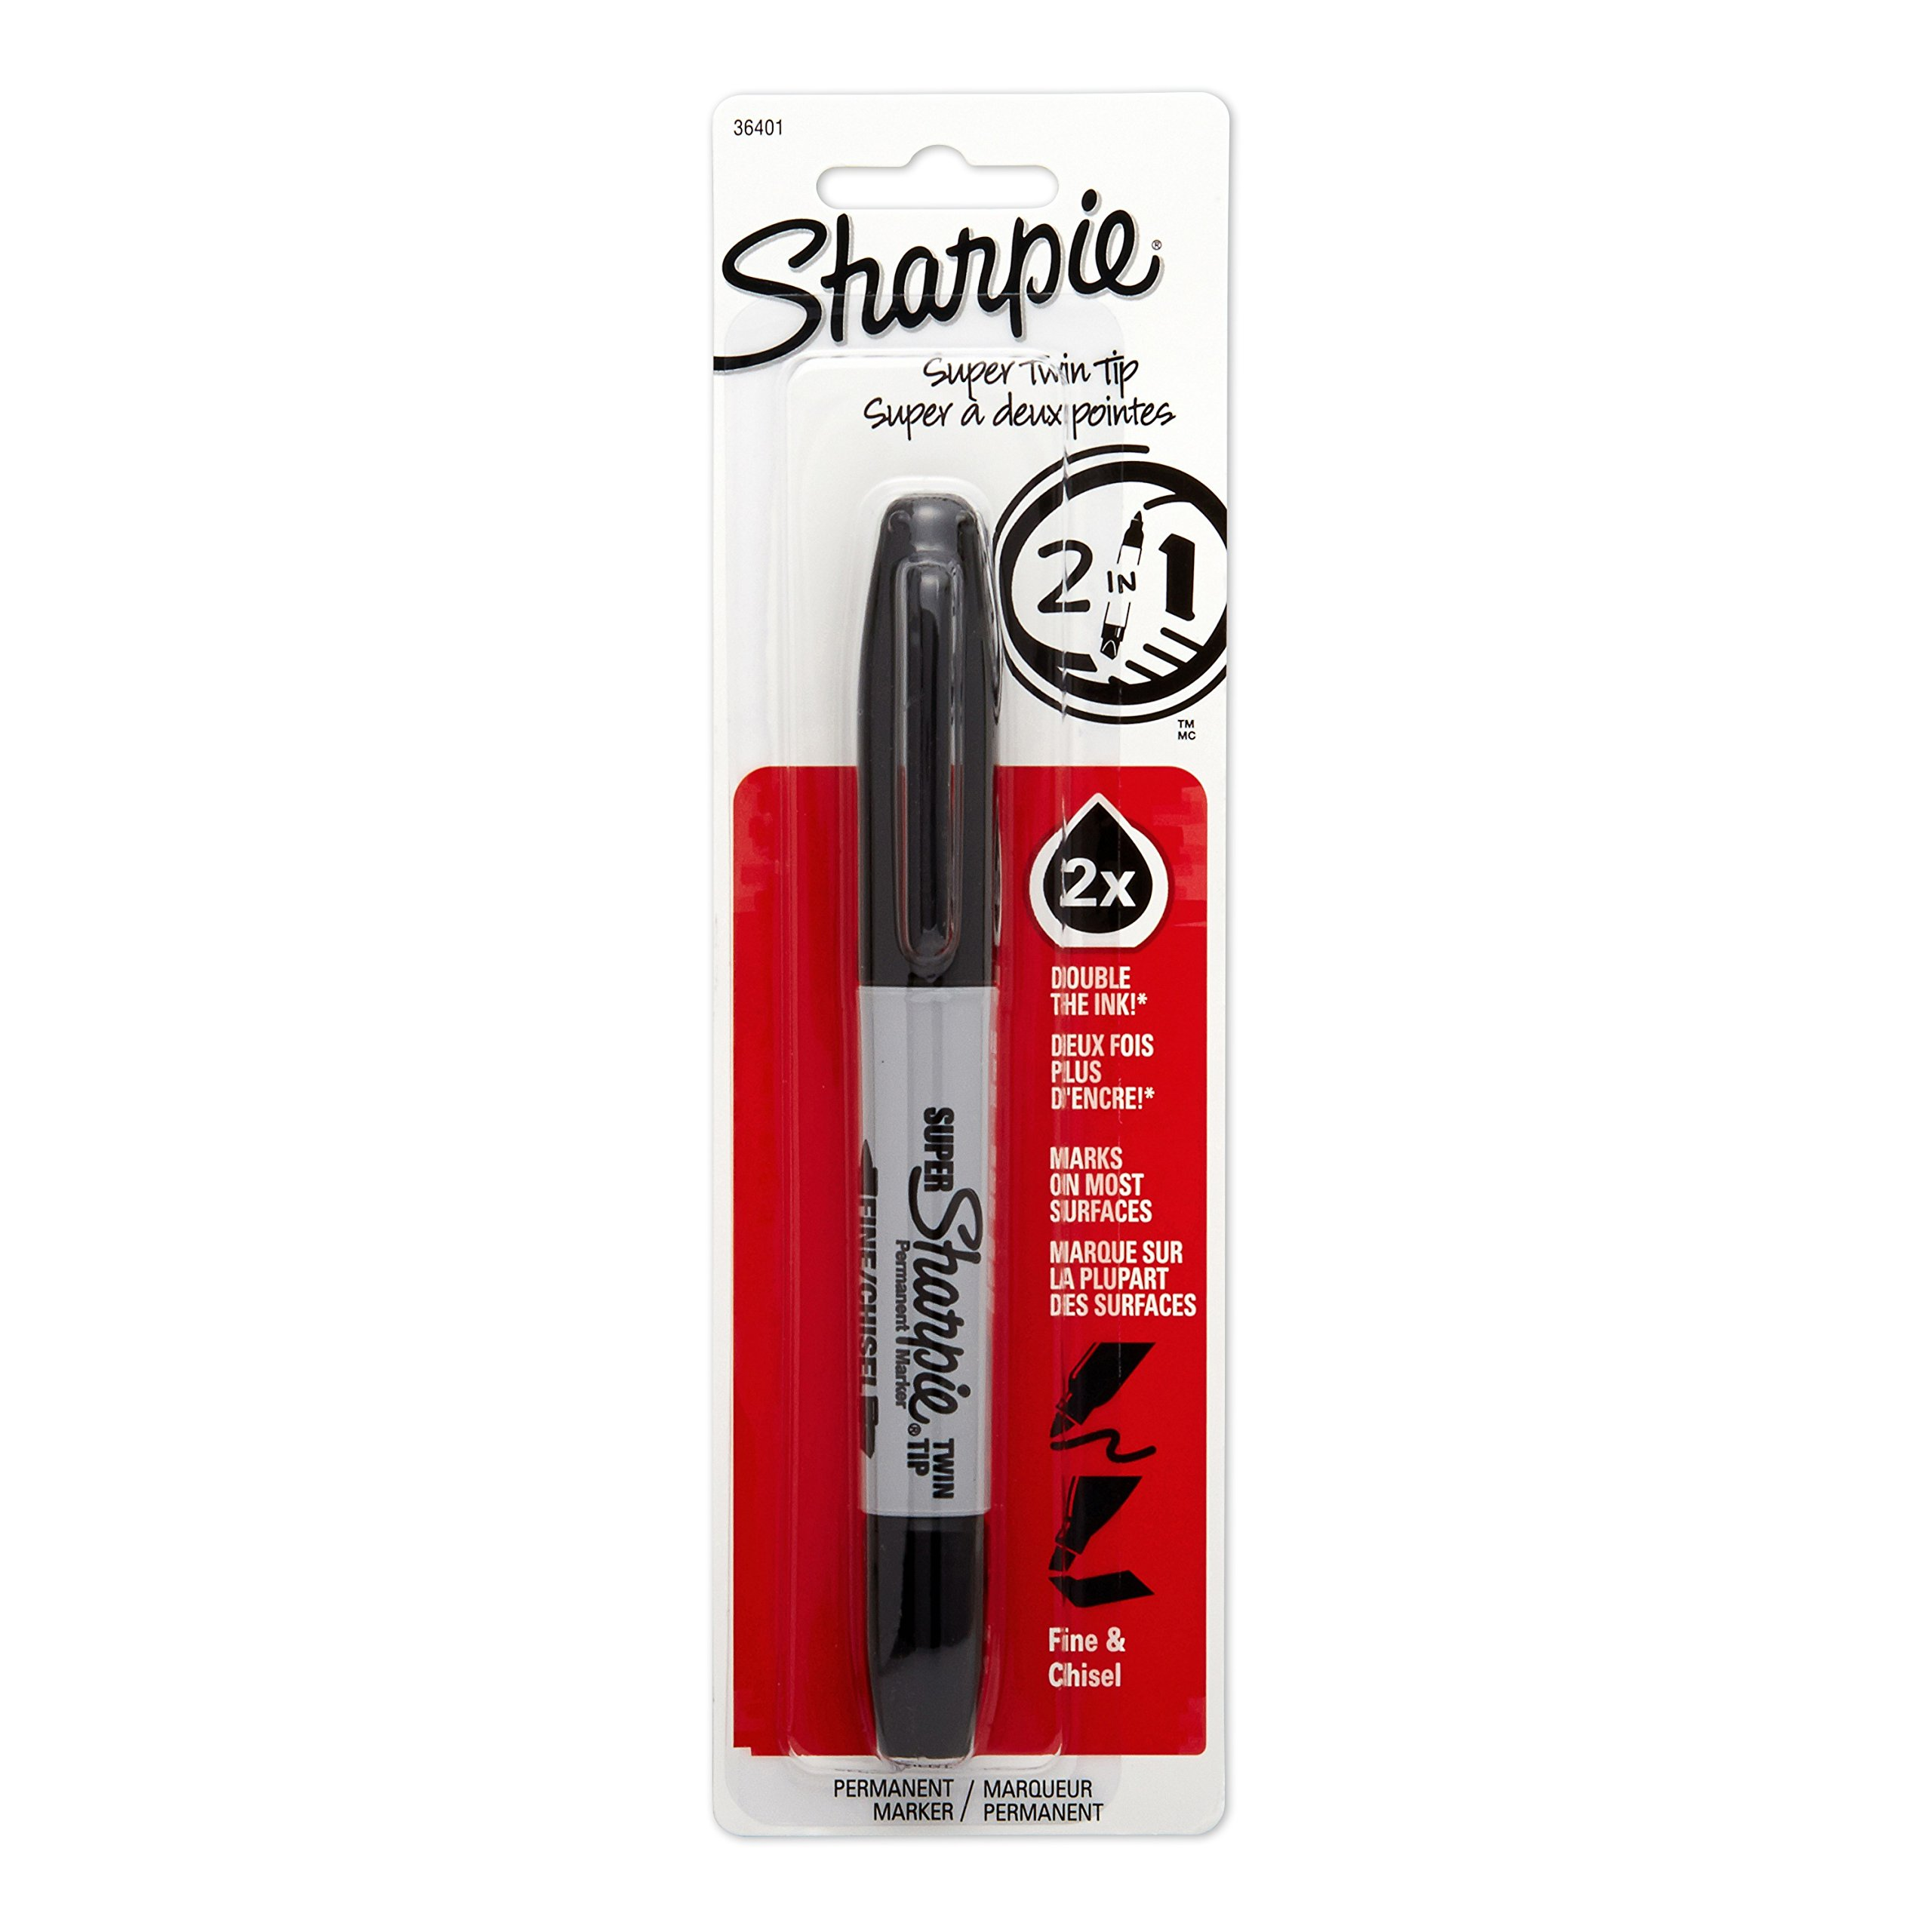 Sharpie Super Twin Tip Fine Point And Chisel Tip Permanent